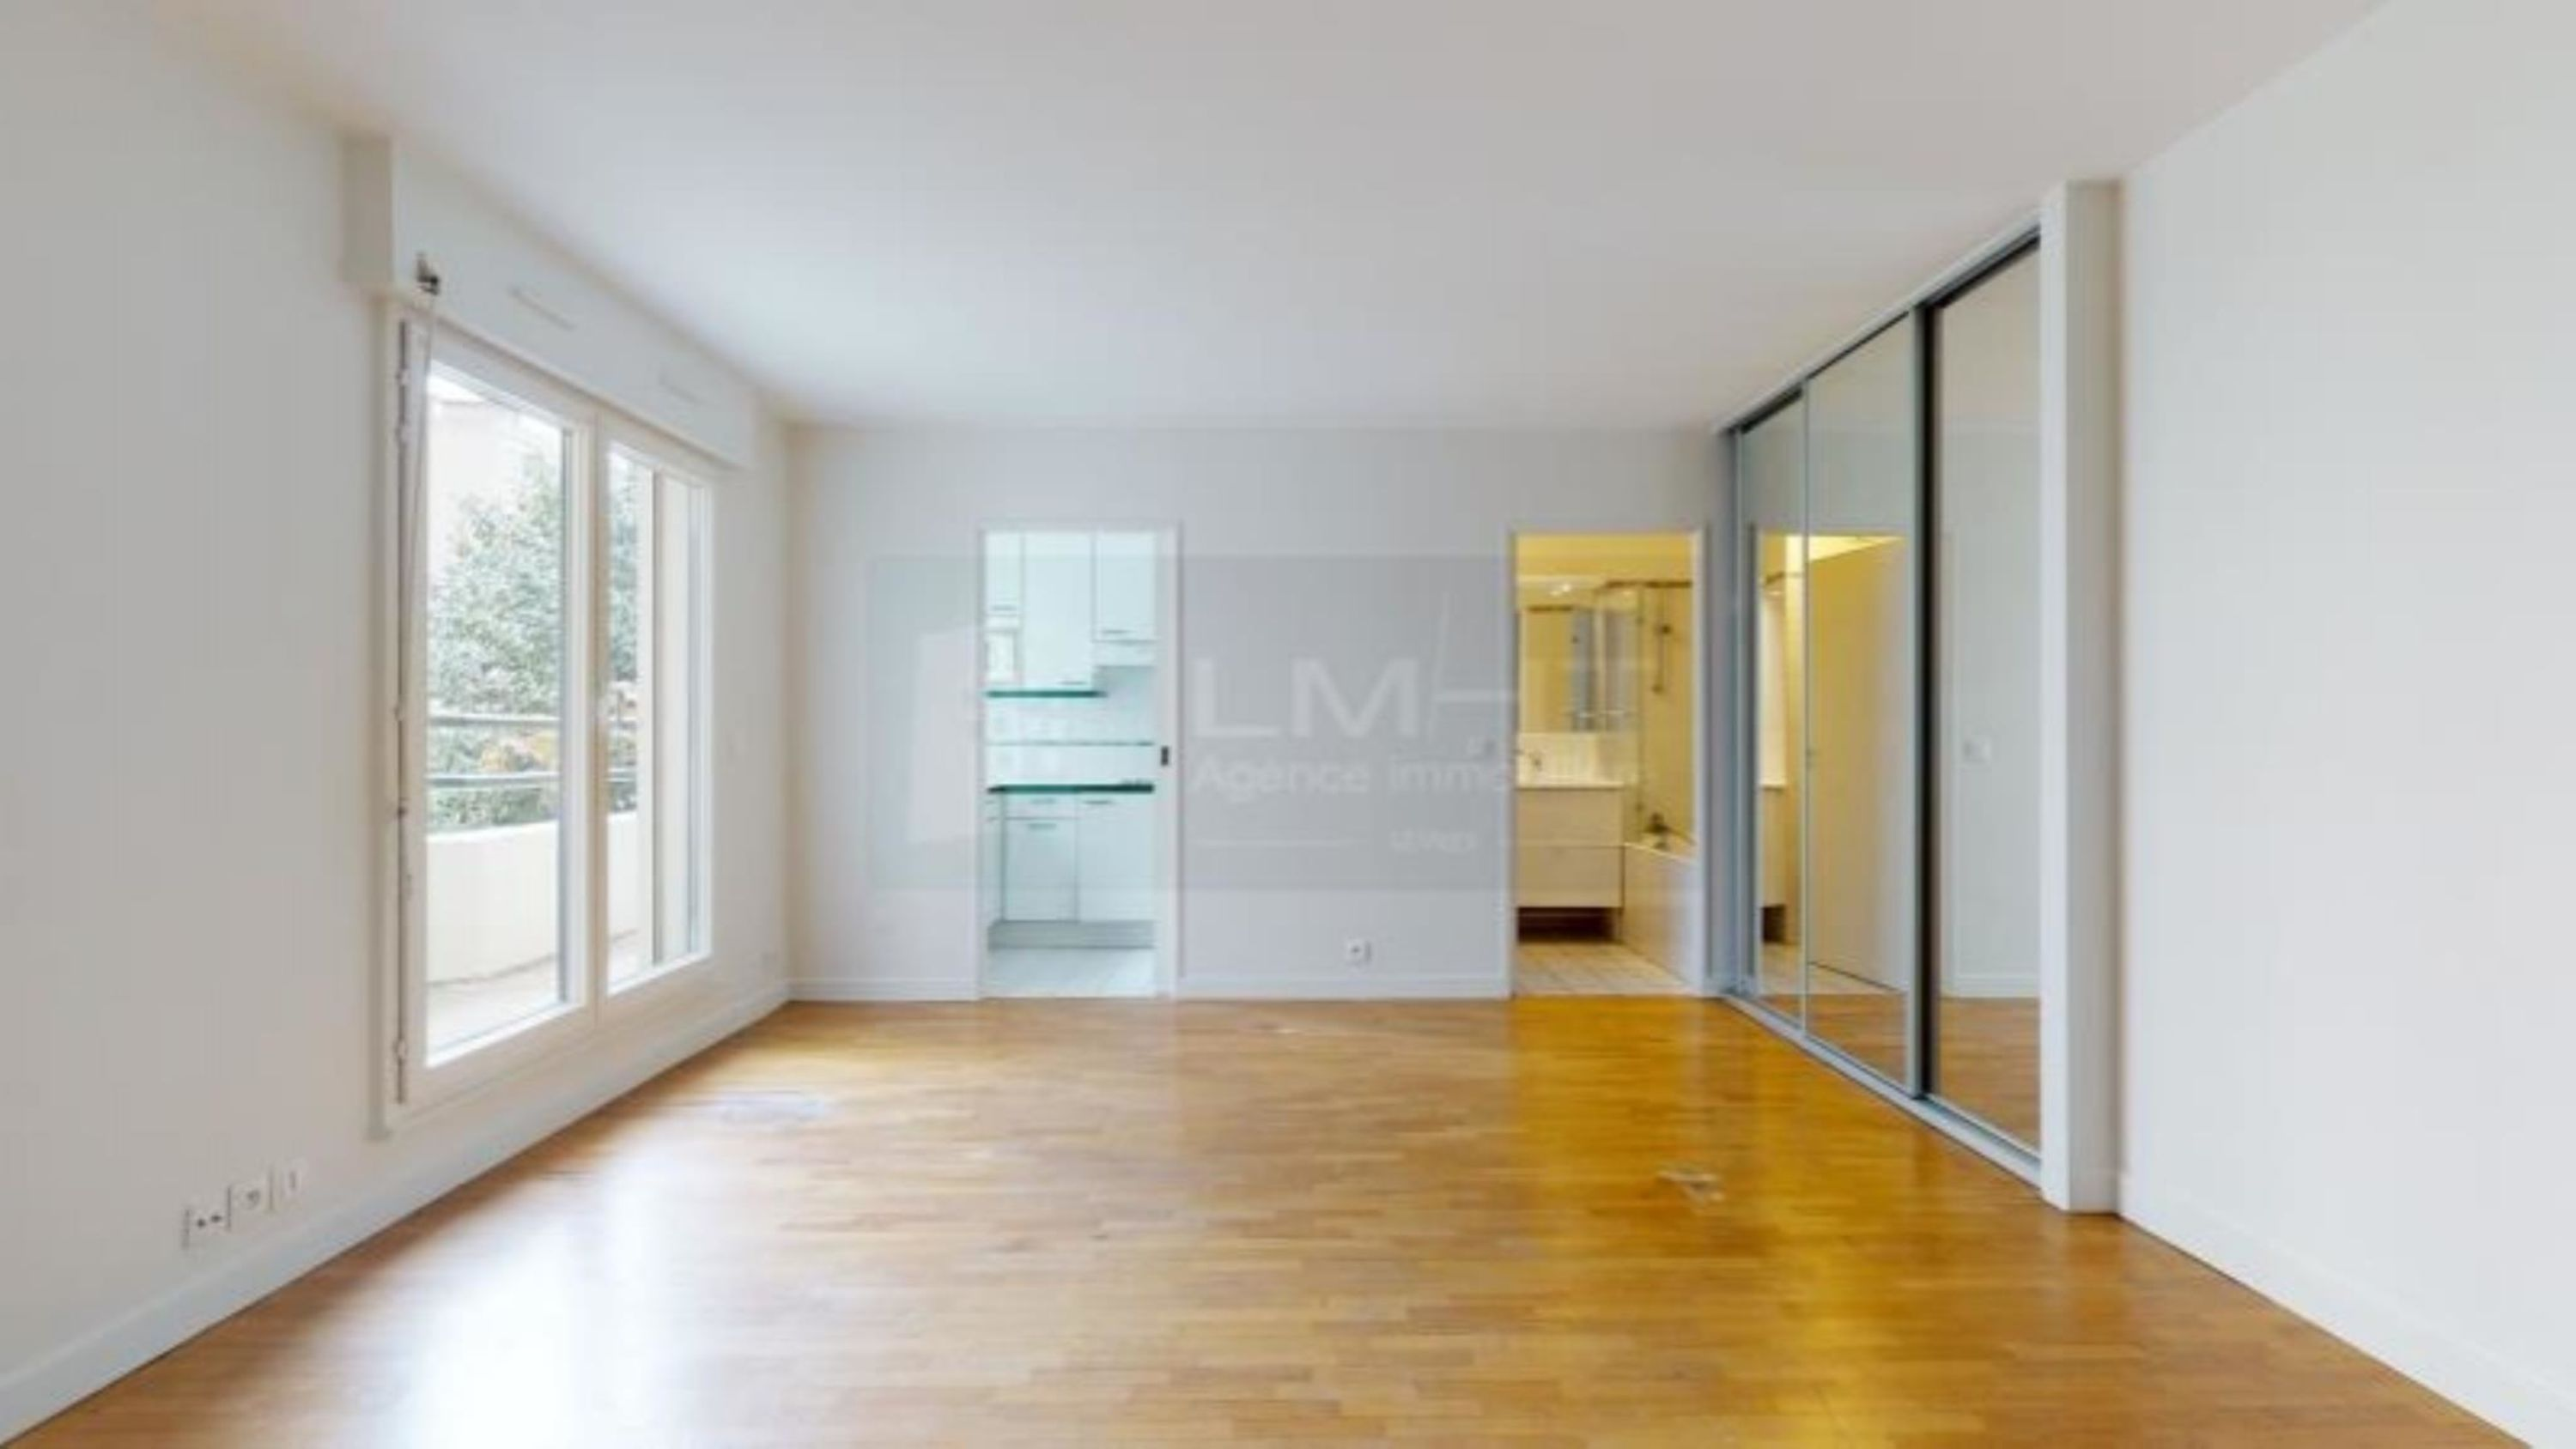 agence immobilière sevres 92 le chesnay 78 achat vente location appartement maison immobilier LMHT ANF ZMEGEWEL